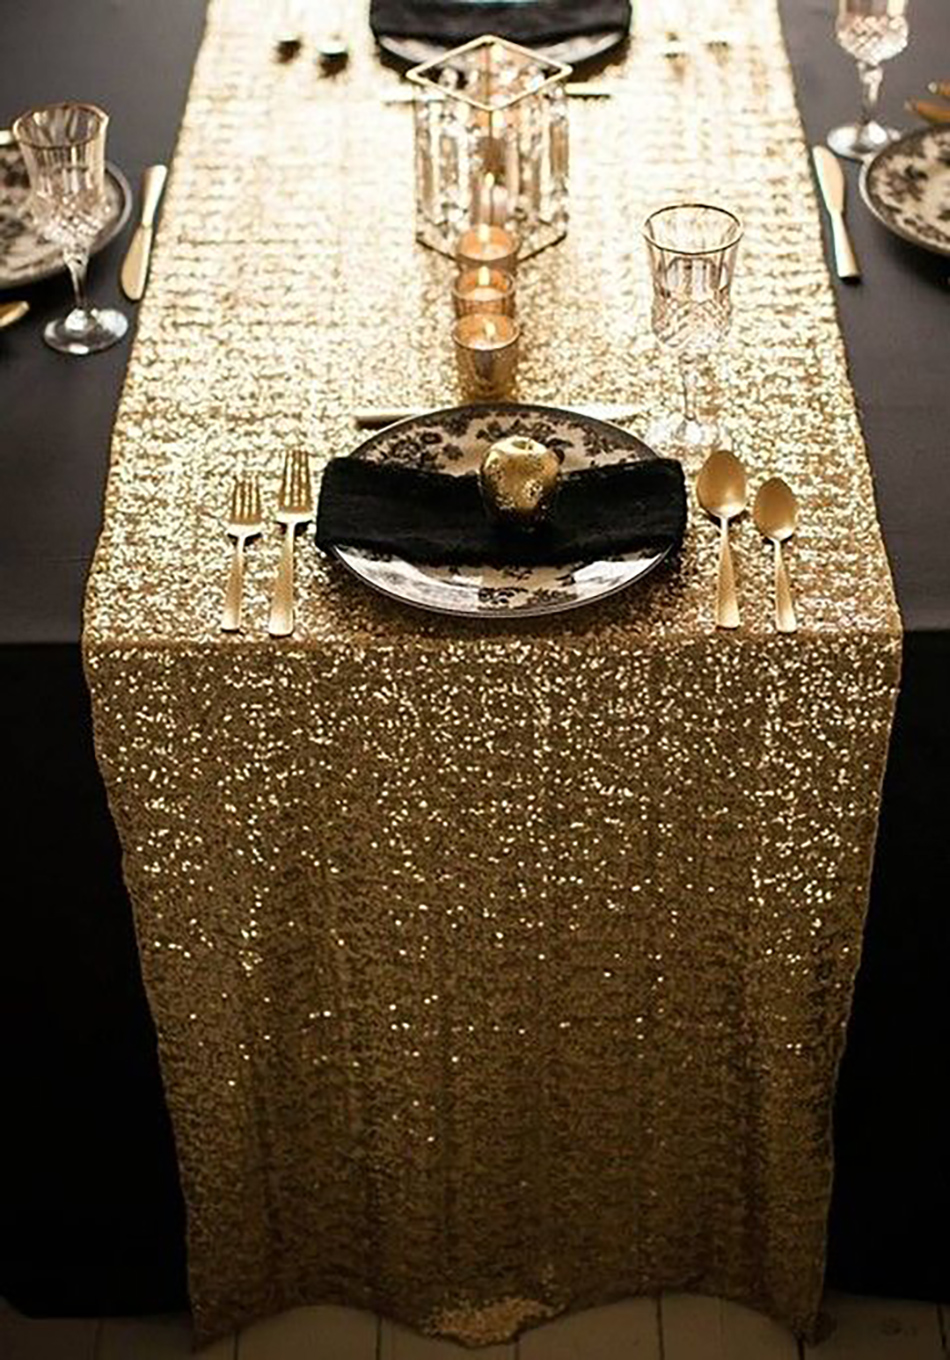 Get a Luxury Table Setting for New Year's Eve  New Year's Eve Get a Luxury Table Setting for New Year's Eve Get a Luxury Table Setting for New Years Eve2